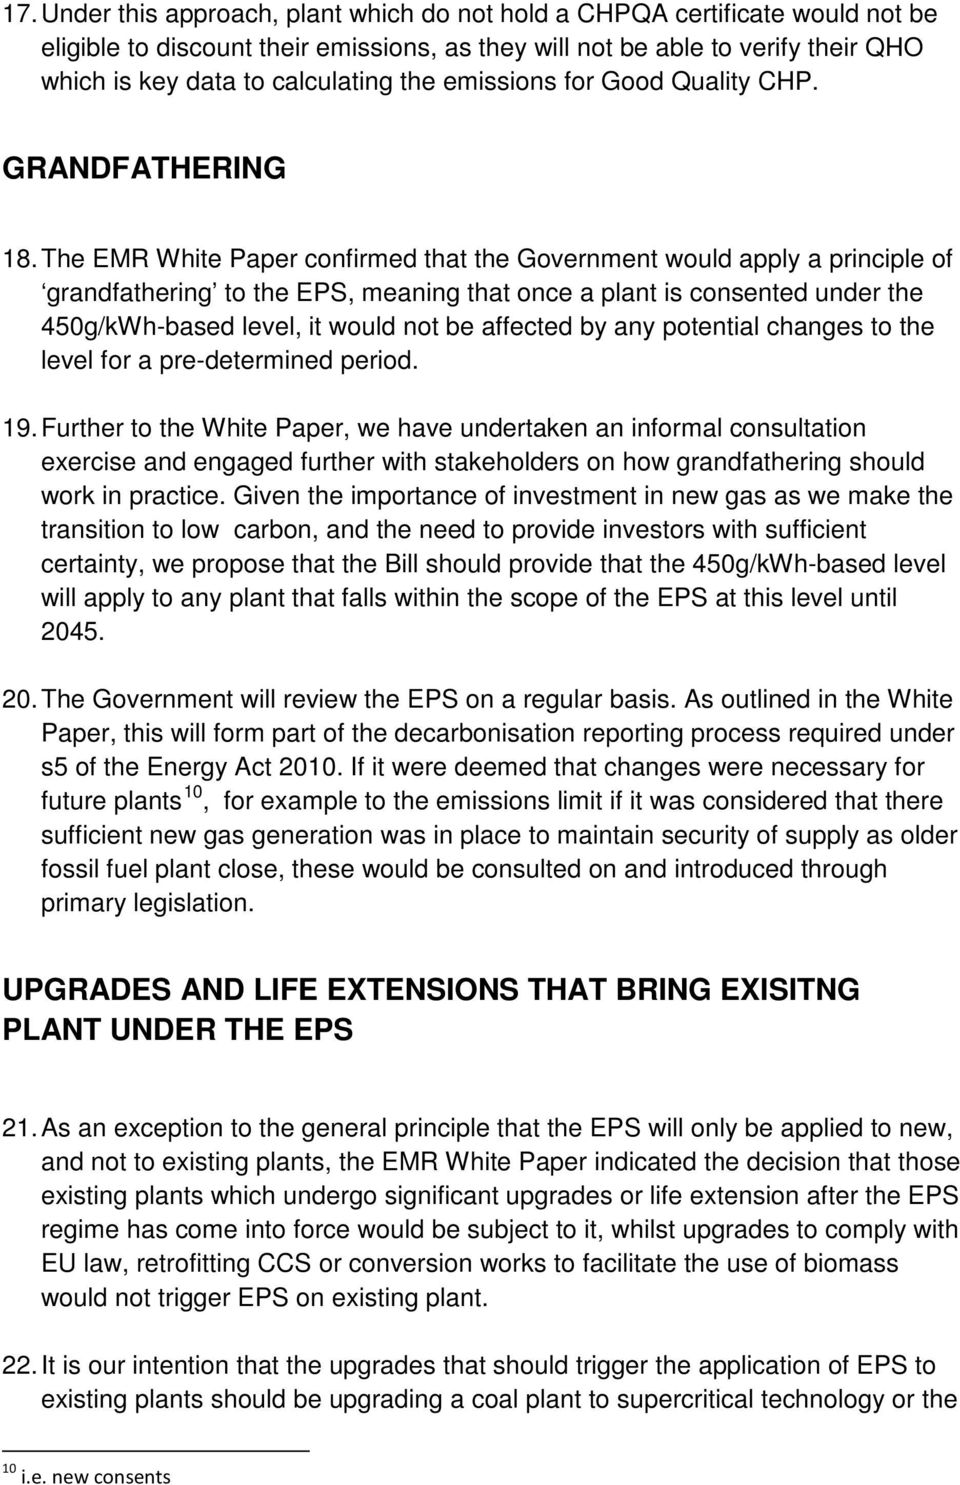 The EMR White Paper confirmed that the Government would apply a principle of grandfathering to the EPS, meaning that once a plant is consented under the 450g/kWh-based level, it would not be affected